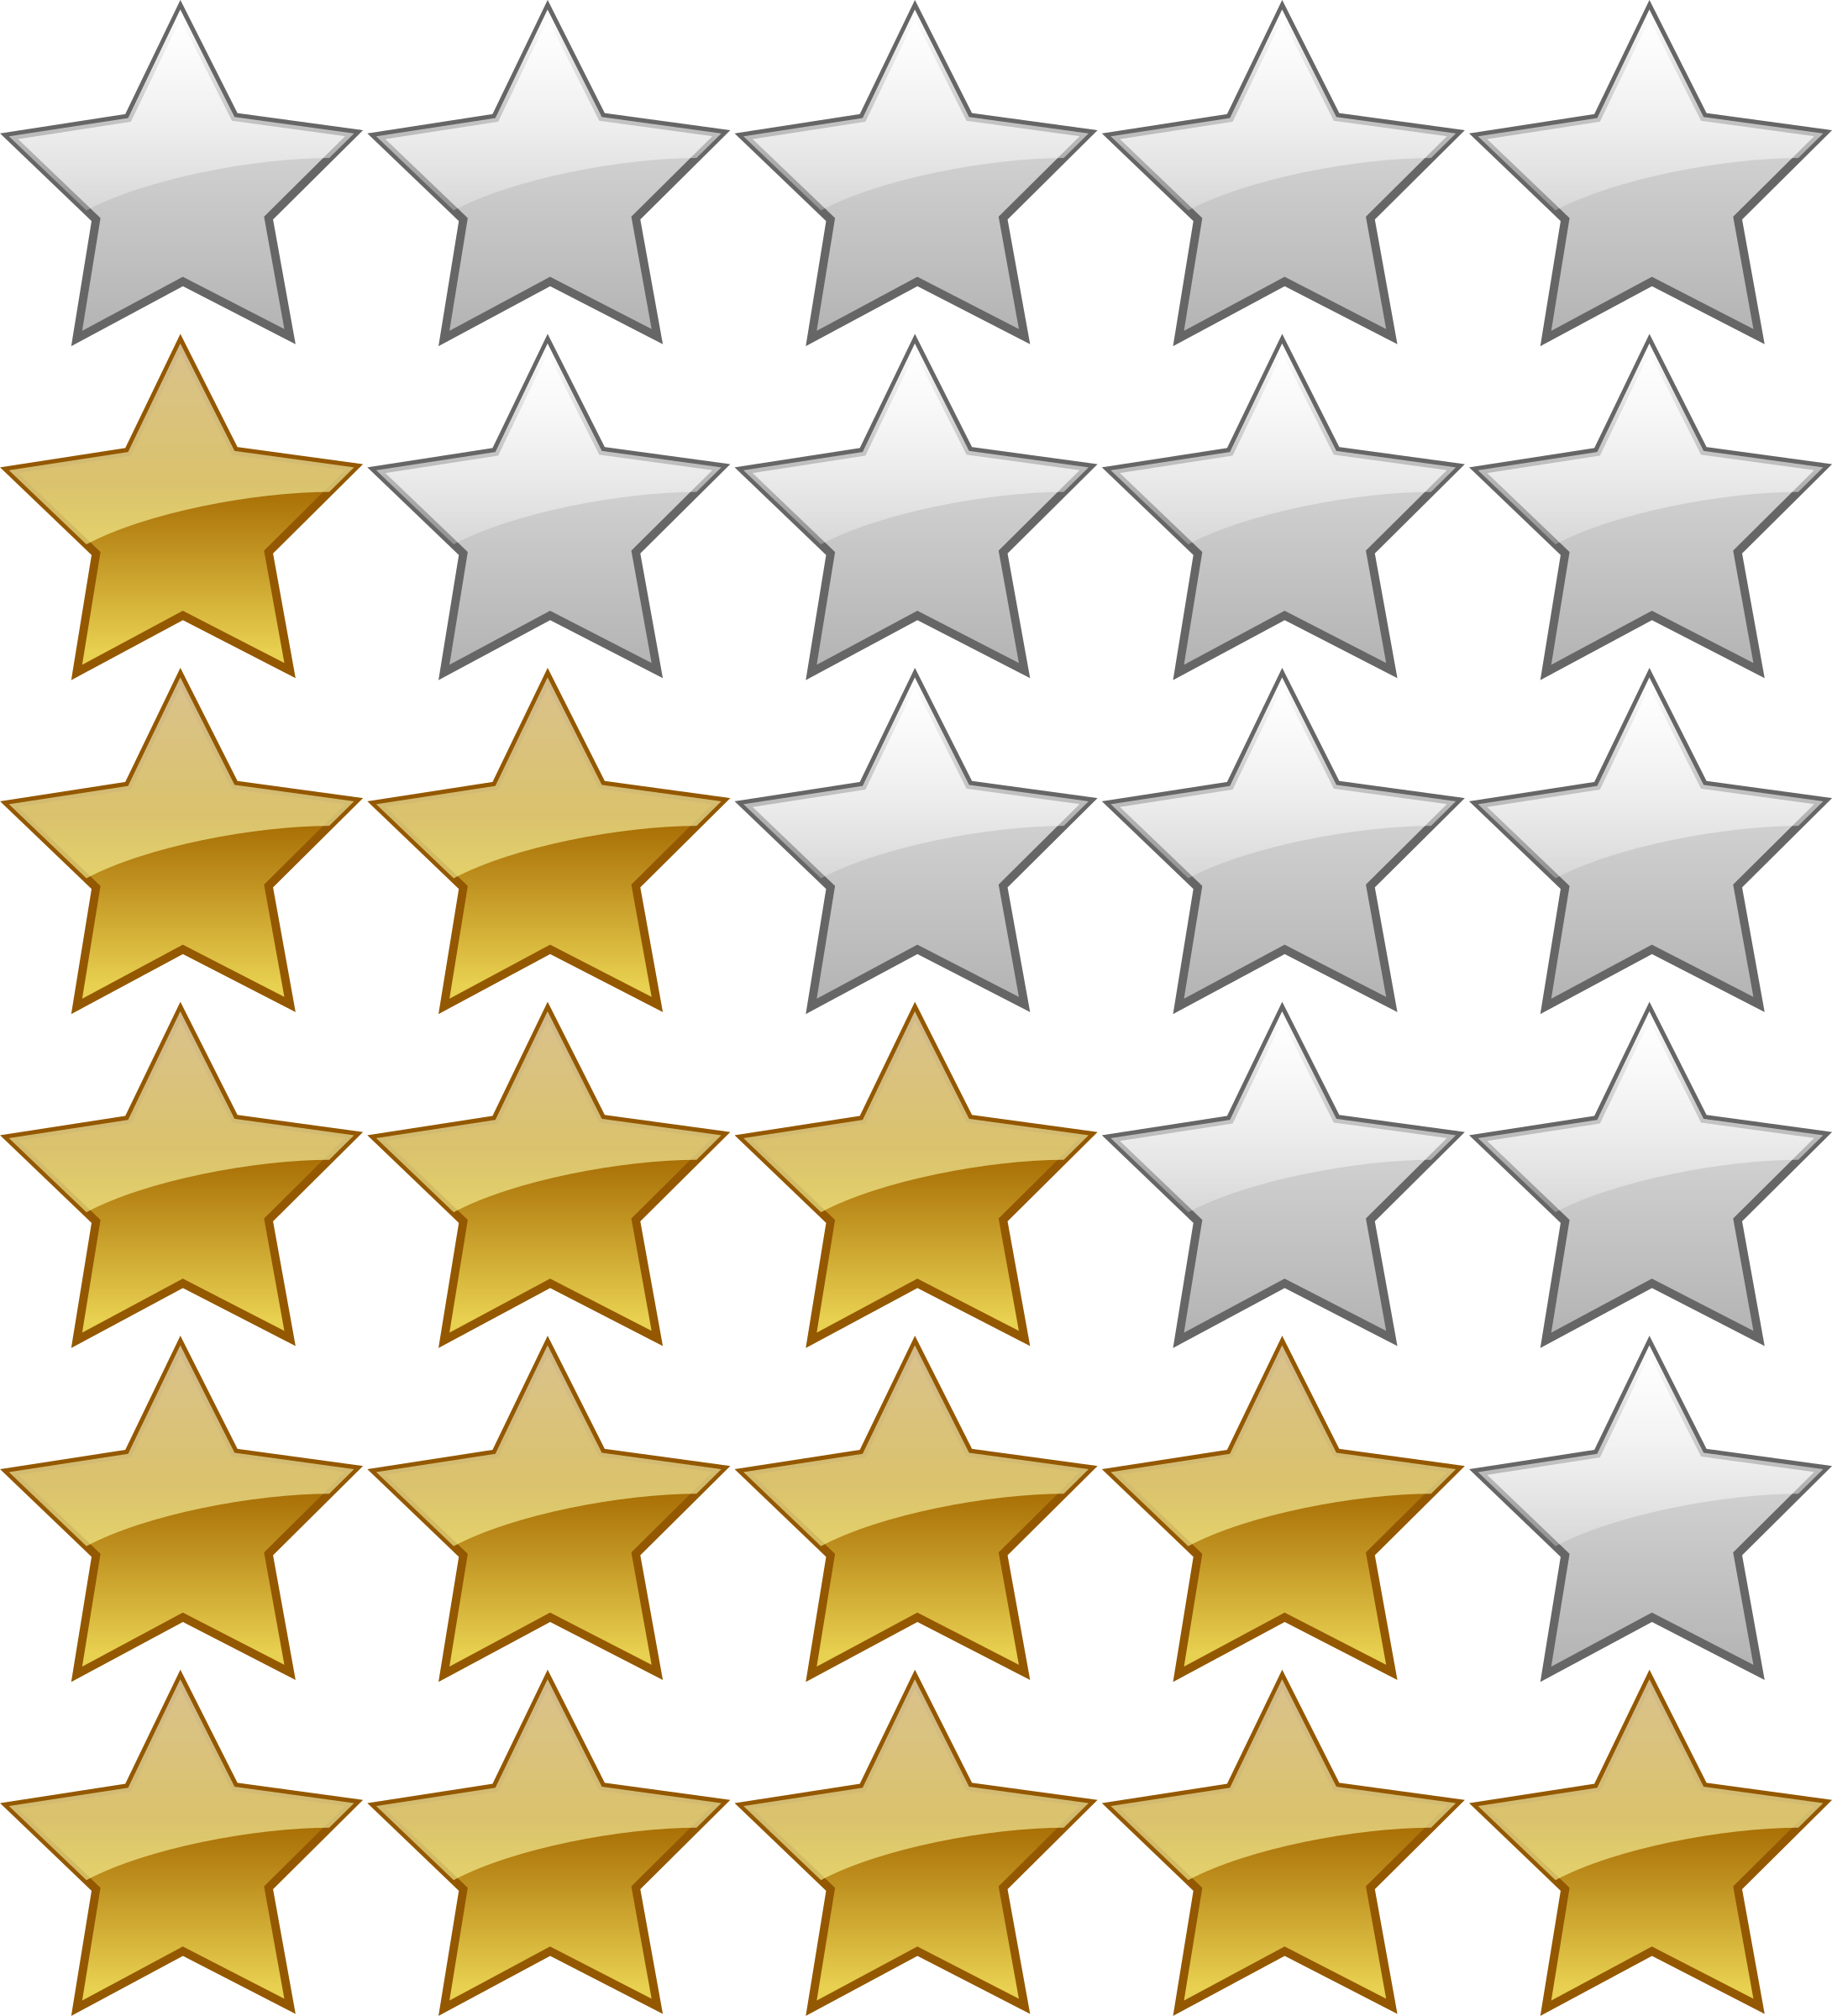 5 stars png. Star rating icon